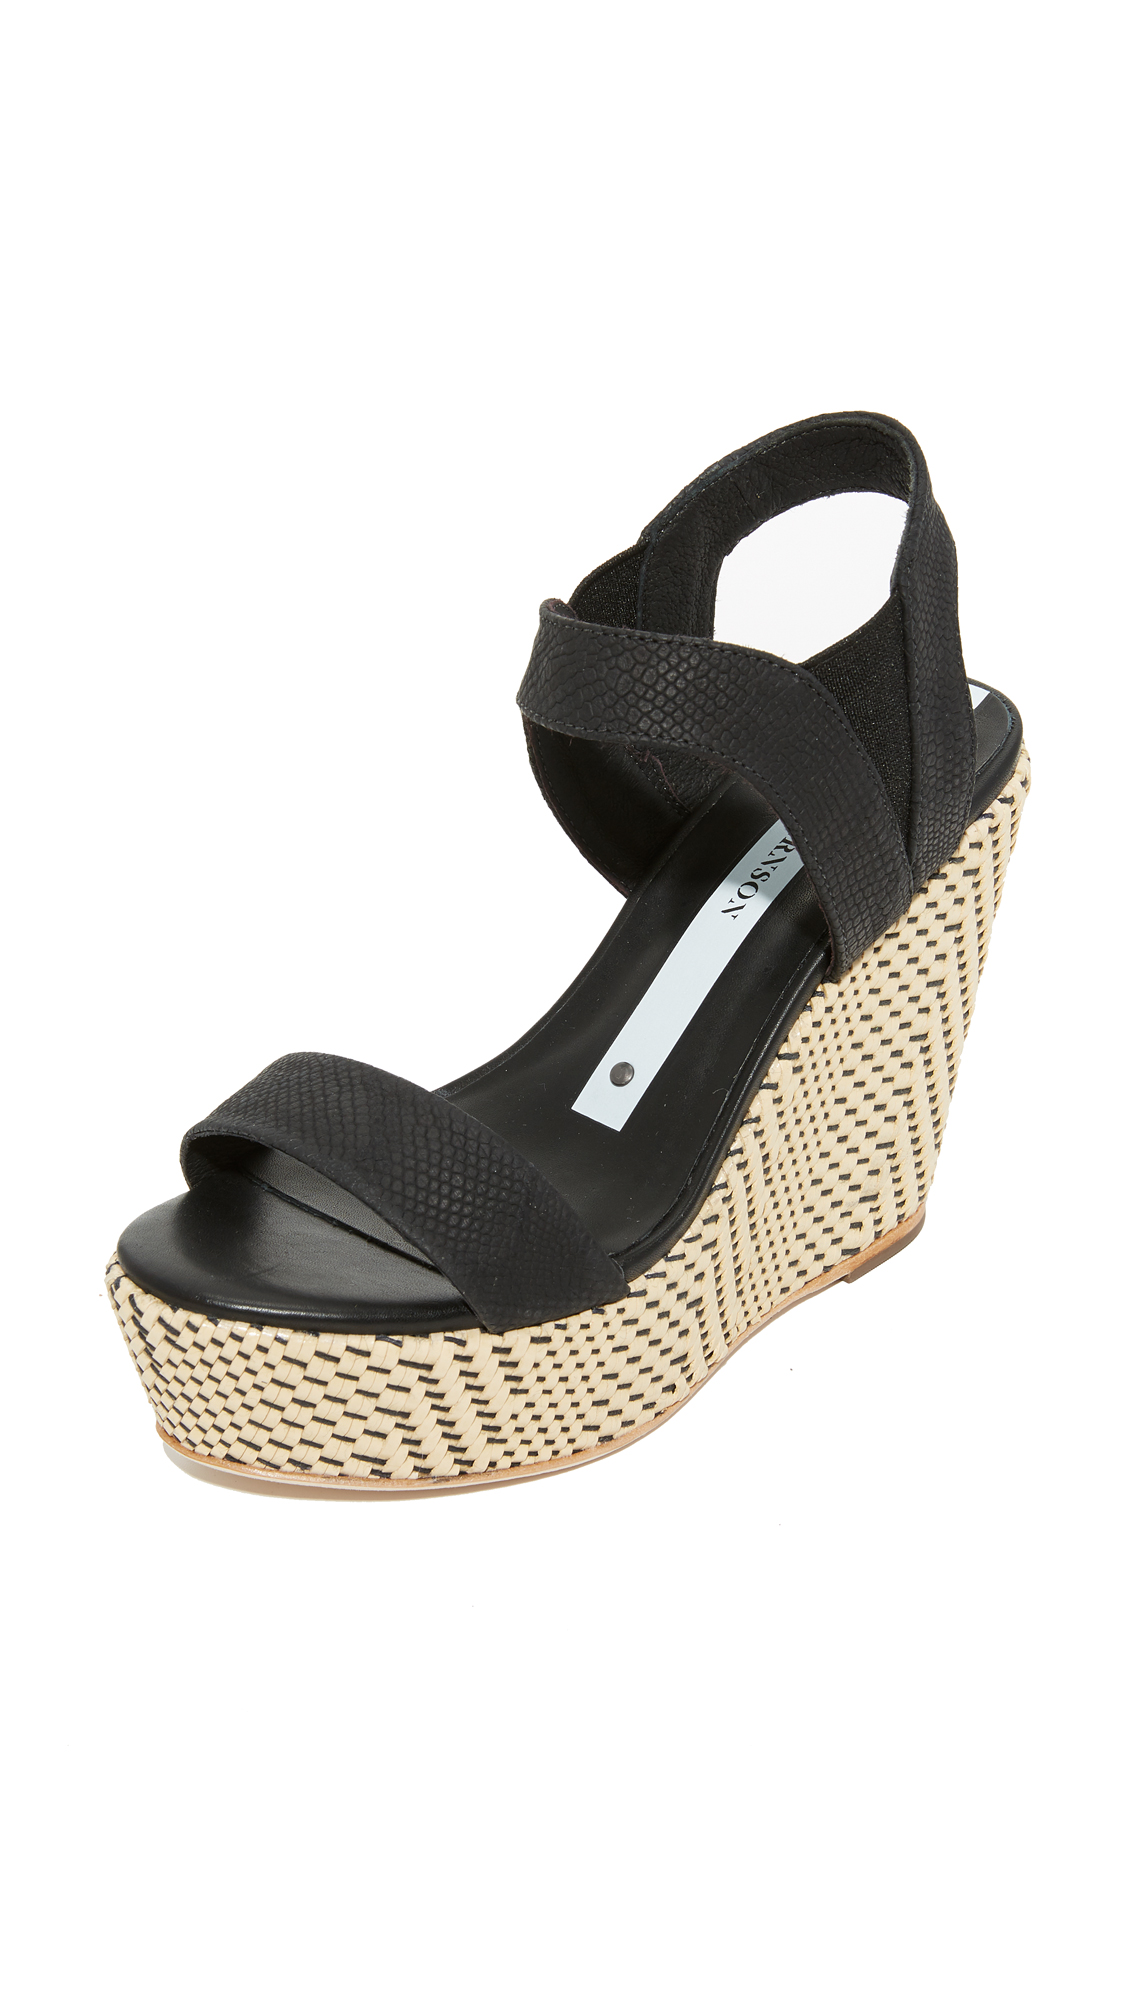 Matt Bernson Defiance Wedges - Black/Black